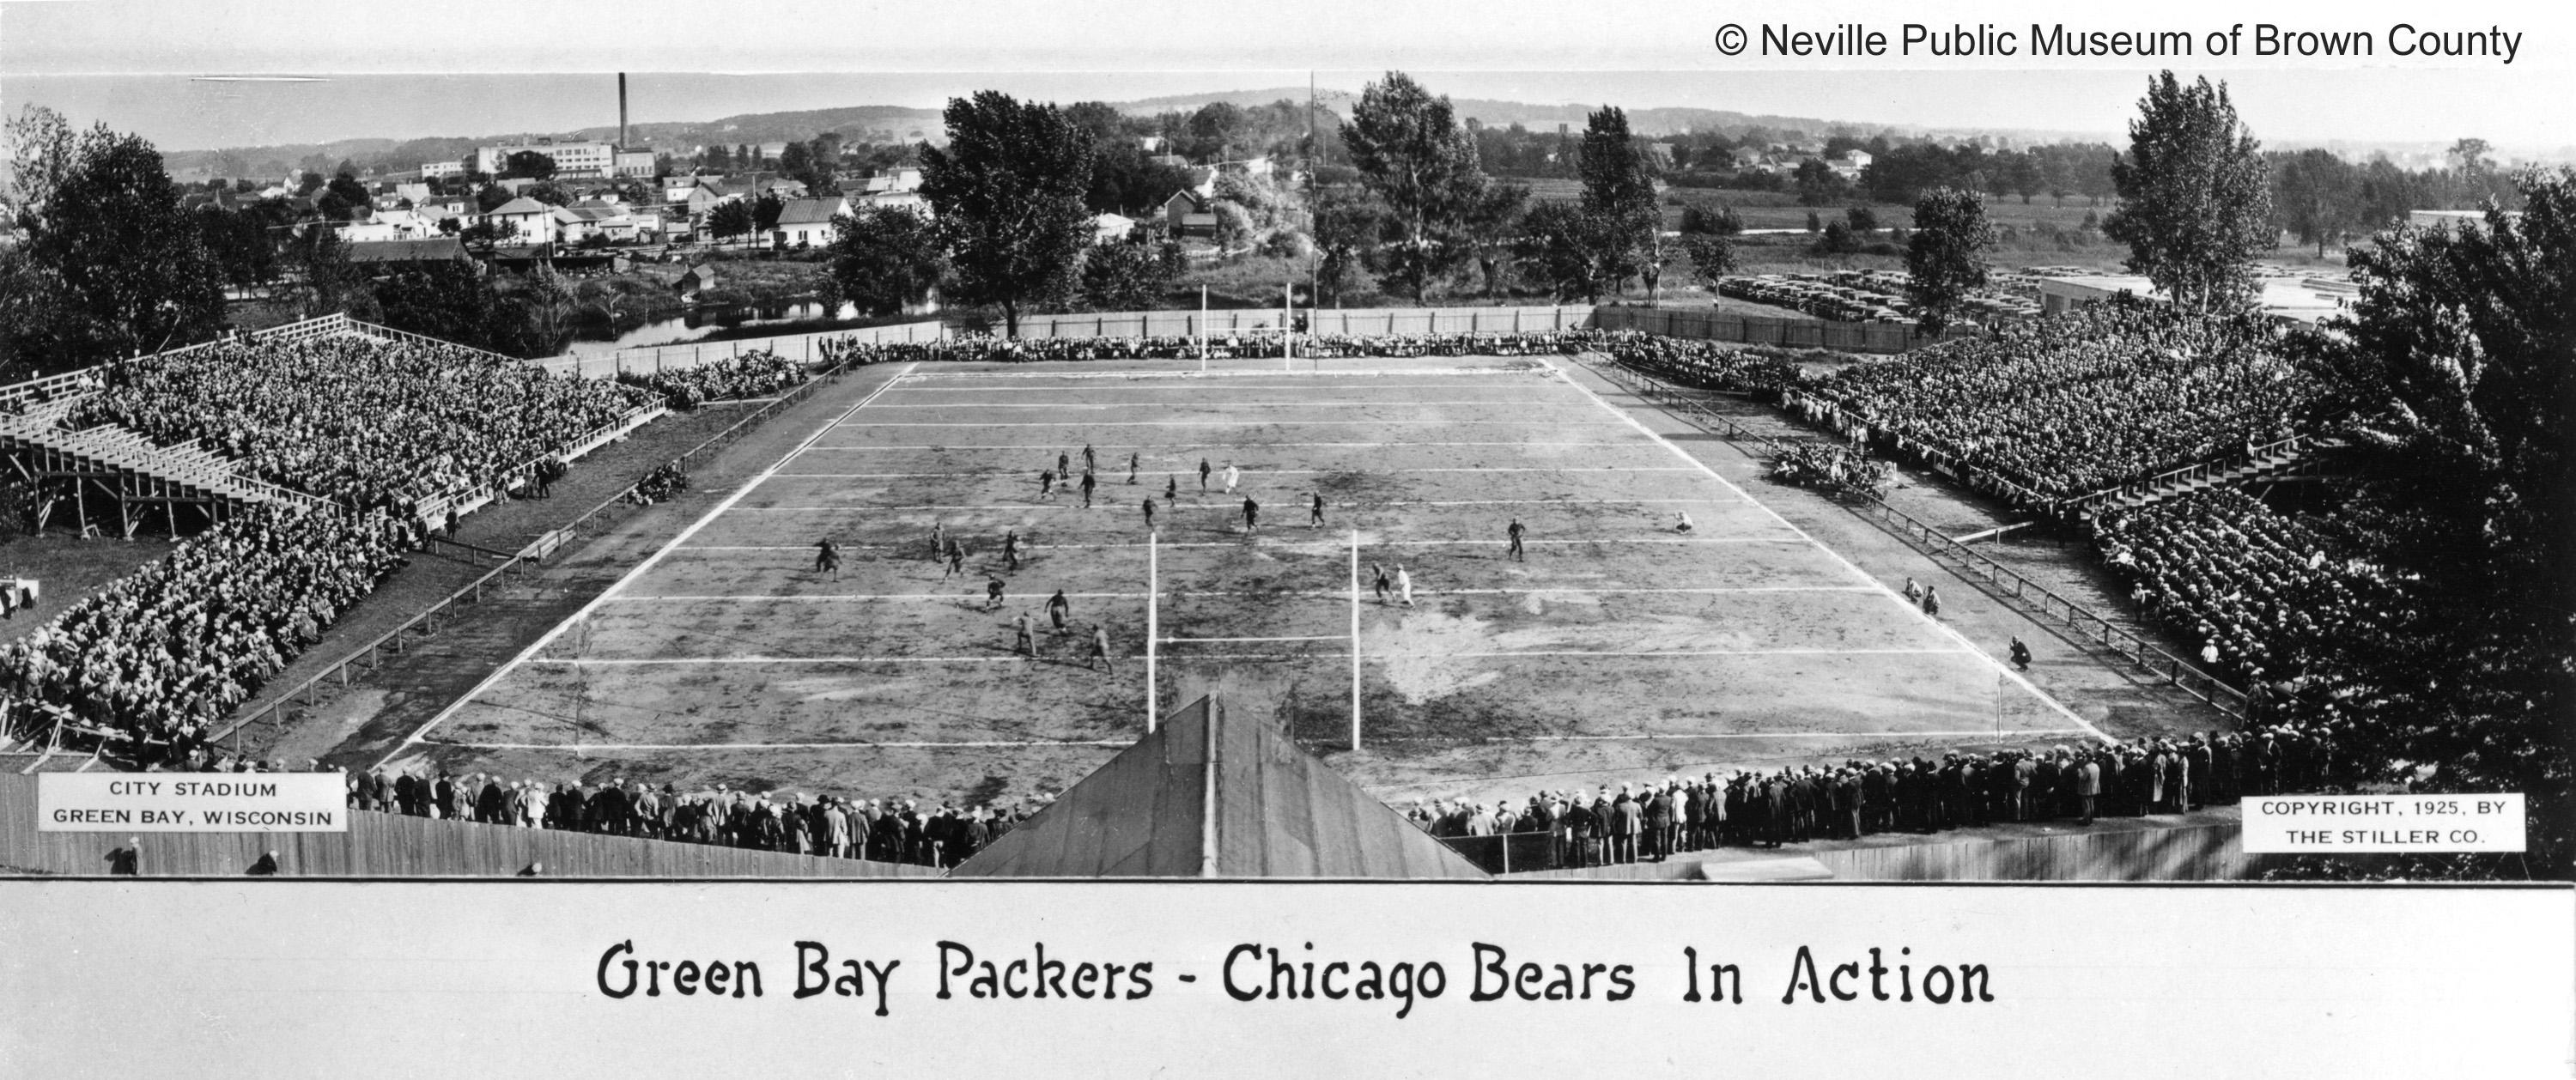 End zone view of Green Bay Packers in action against the Chicago Bears, with standing room only for fans. (Courtesy: Neville Public Museum of Brown County)